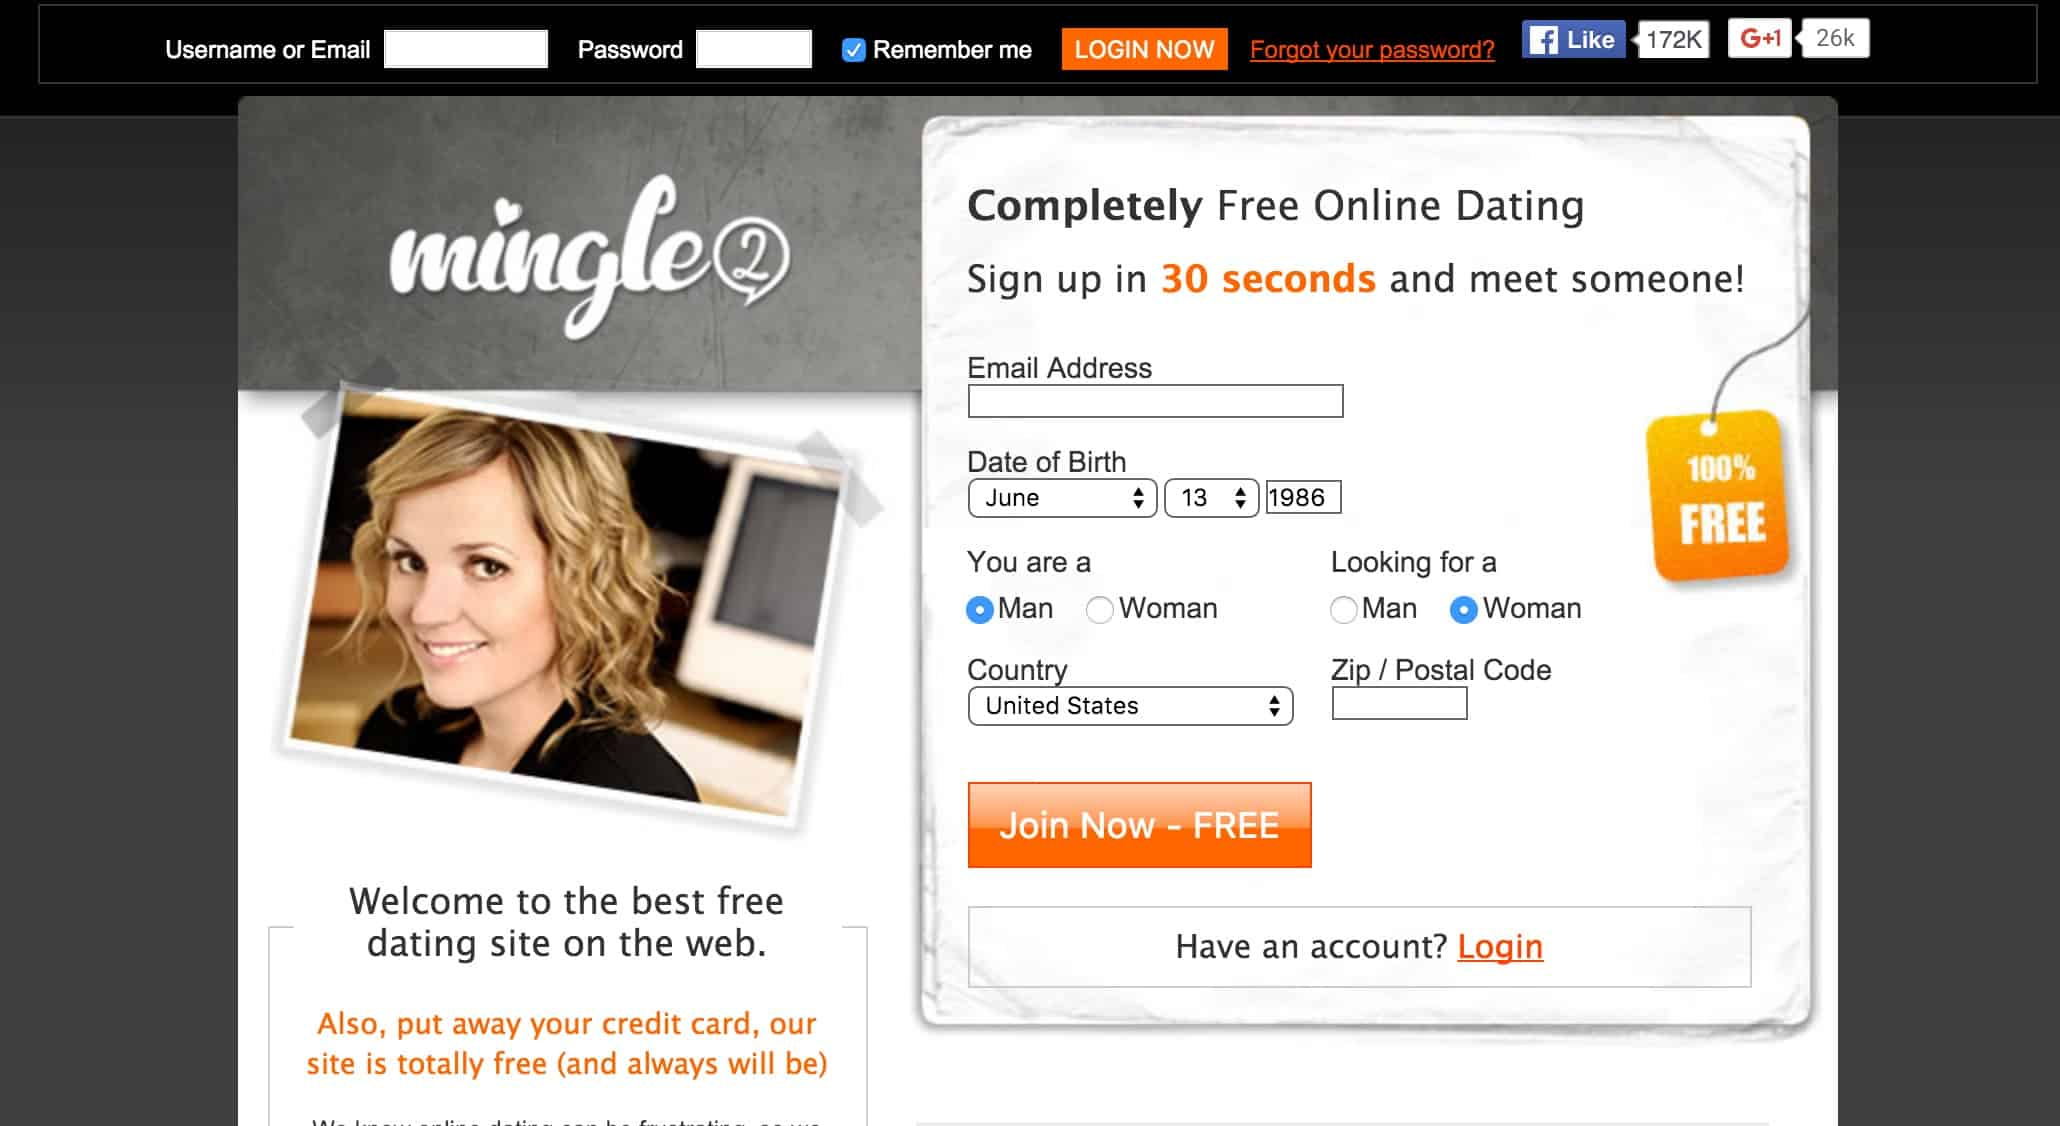 Free italian dating sites A&H Party Rentals Inc